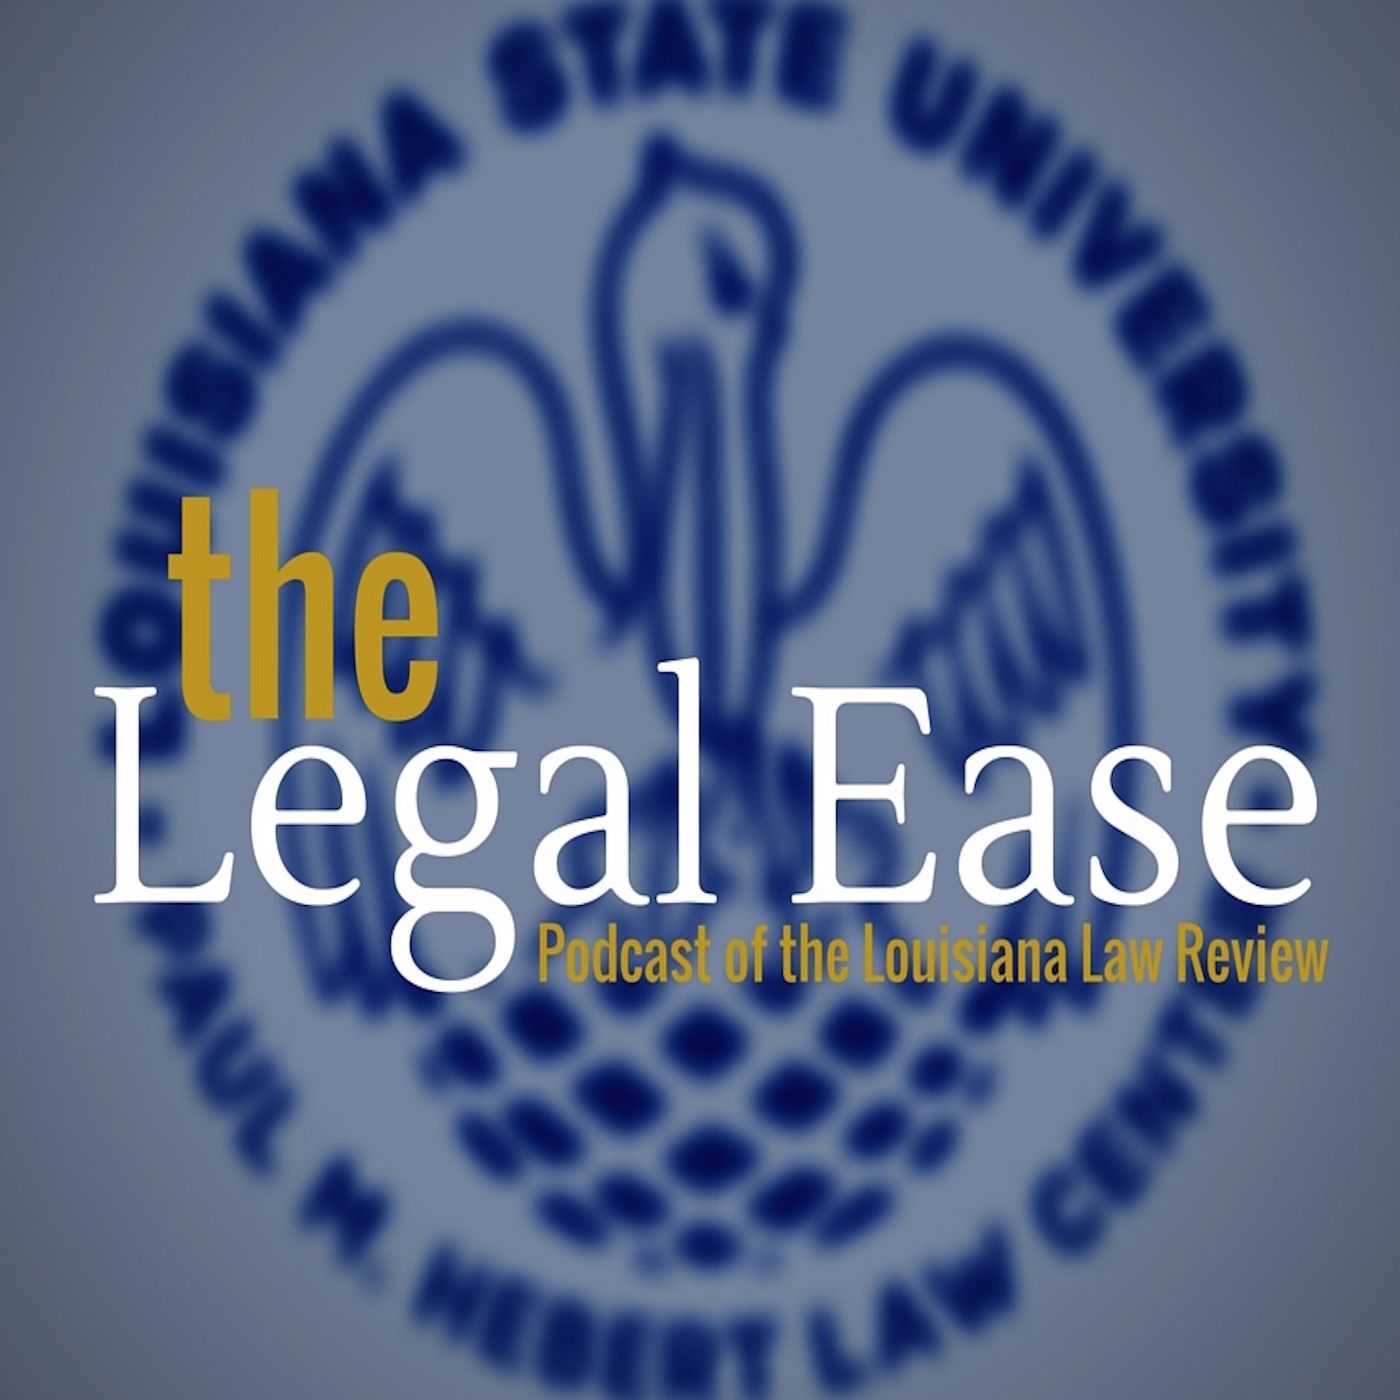 The Legal Ease